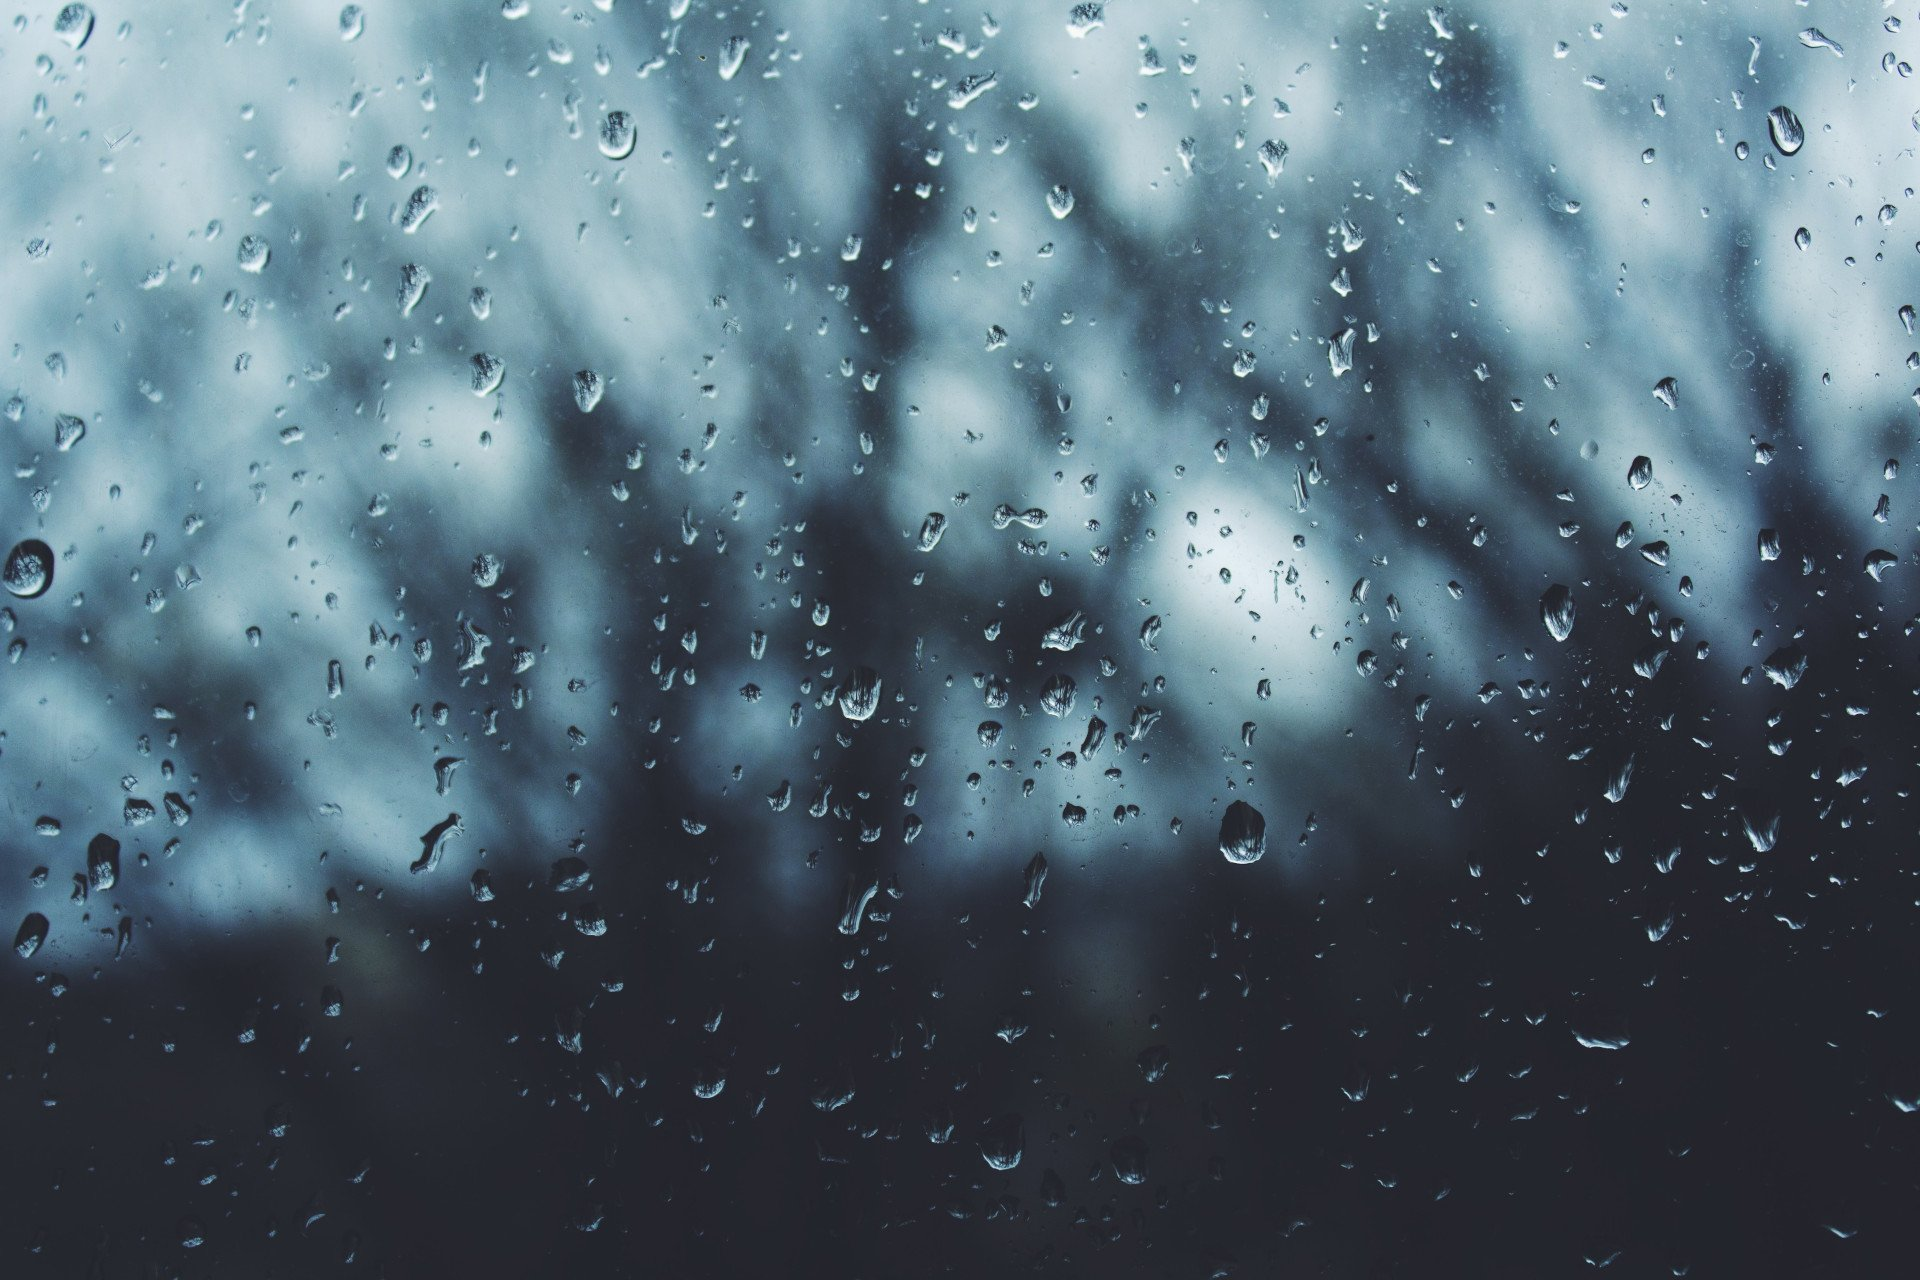 rainy mood 7 July 23, 2019